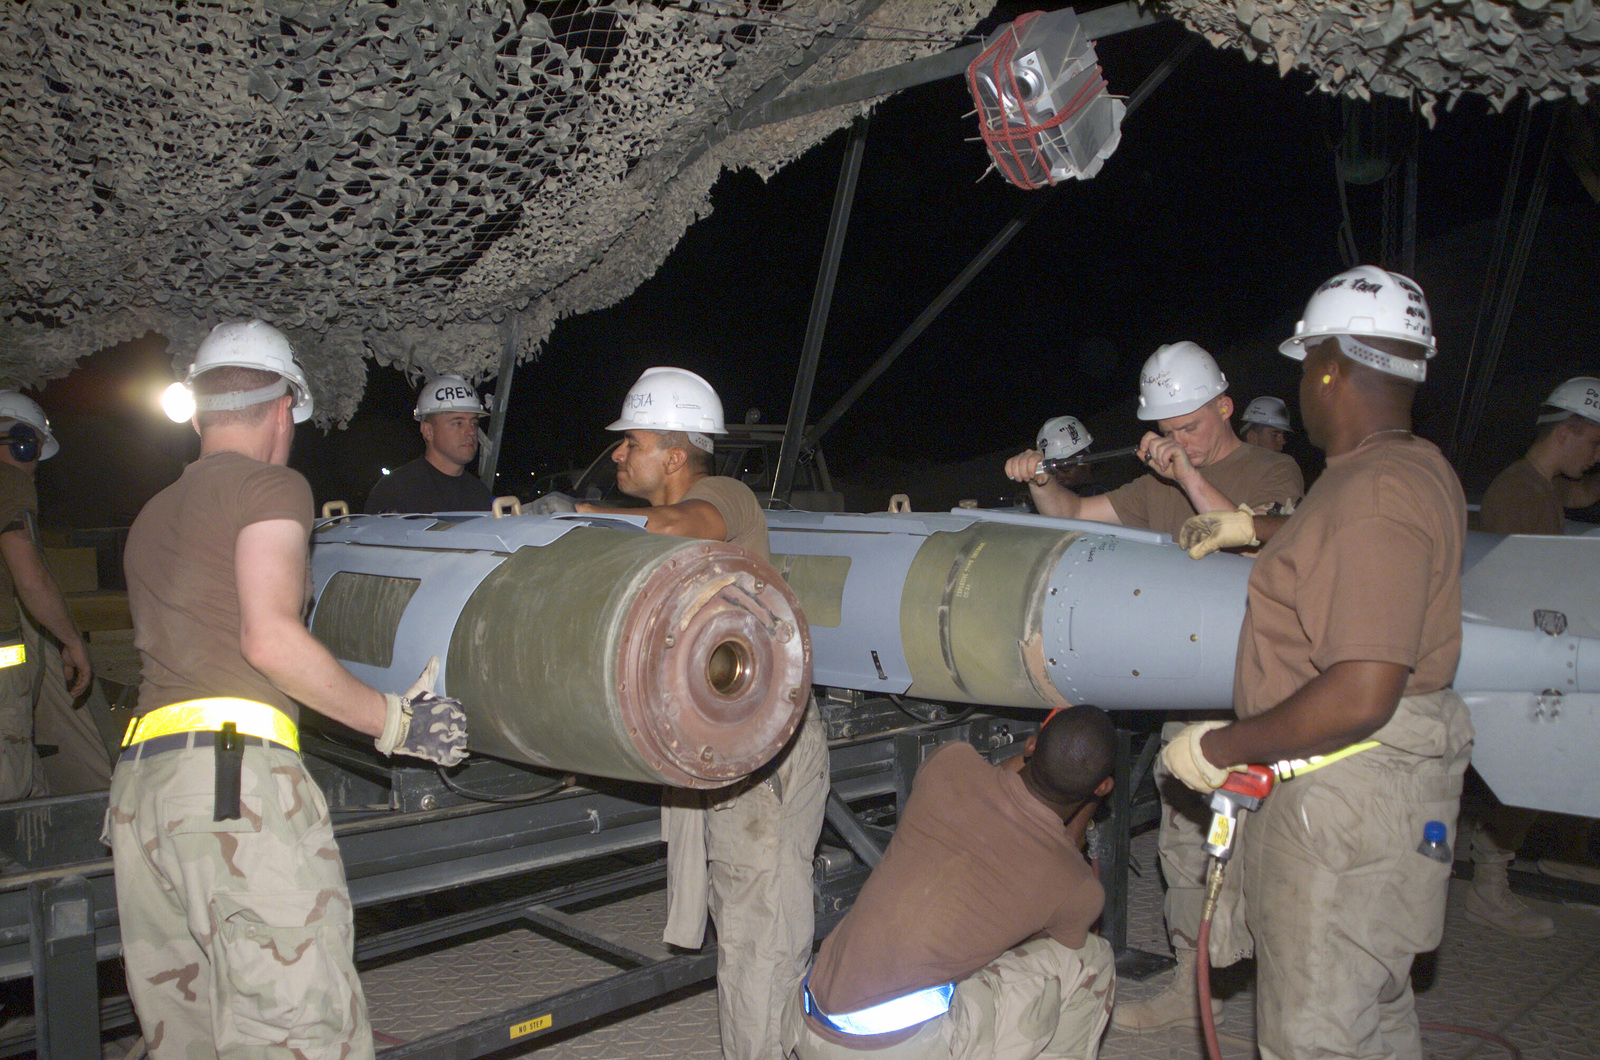 A US Air Force (USAF) team of munitions specialists from the 405th Expeditionary Munitions Squadron (EMS), install the fin assemblies to the Joint Direct Attack Munition (JDAM) bombs, in support of Operation IRAQI FREEDOM